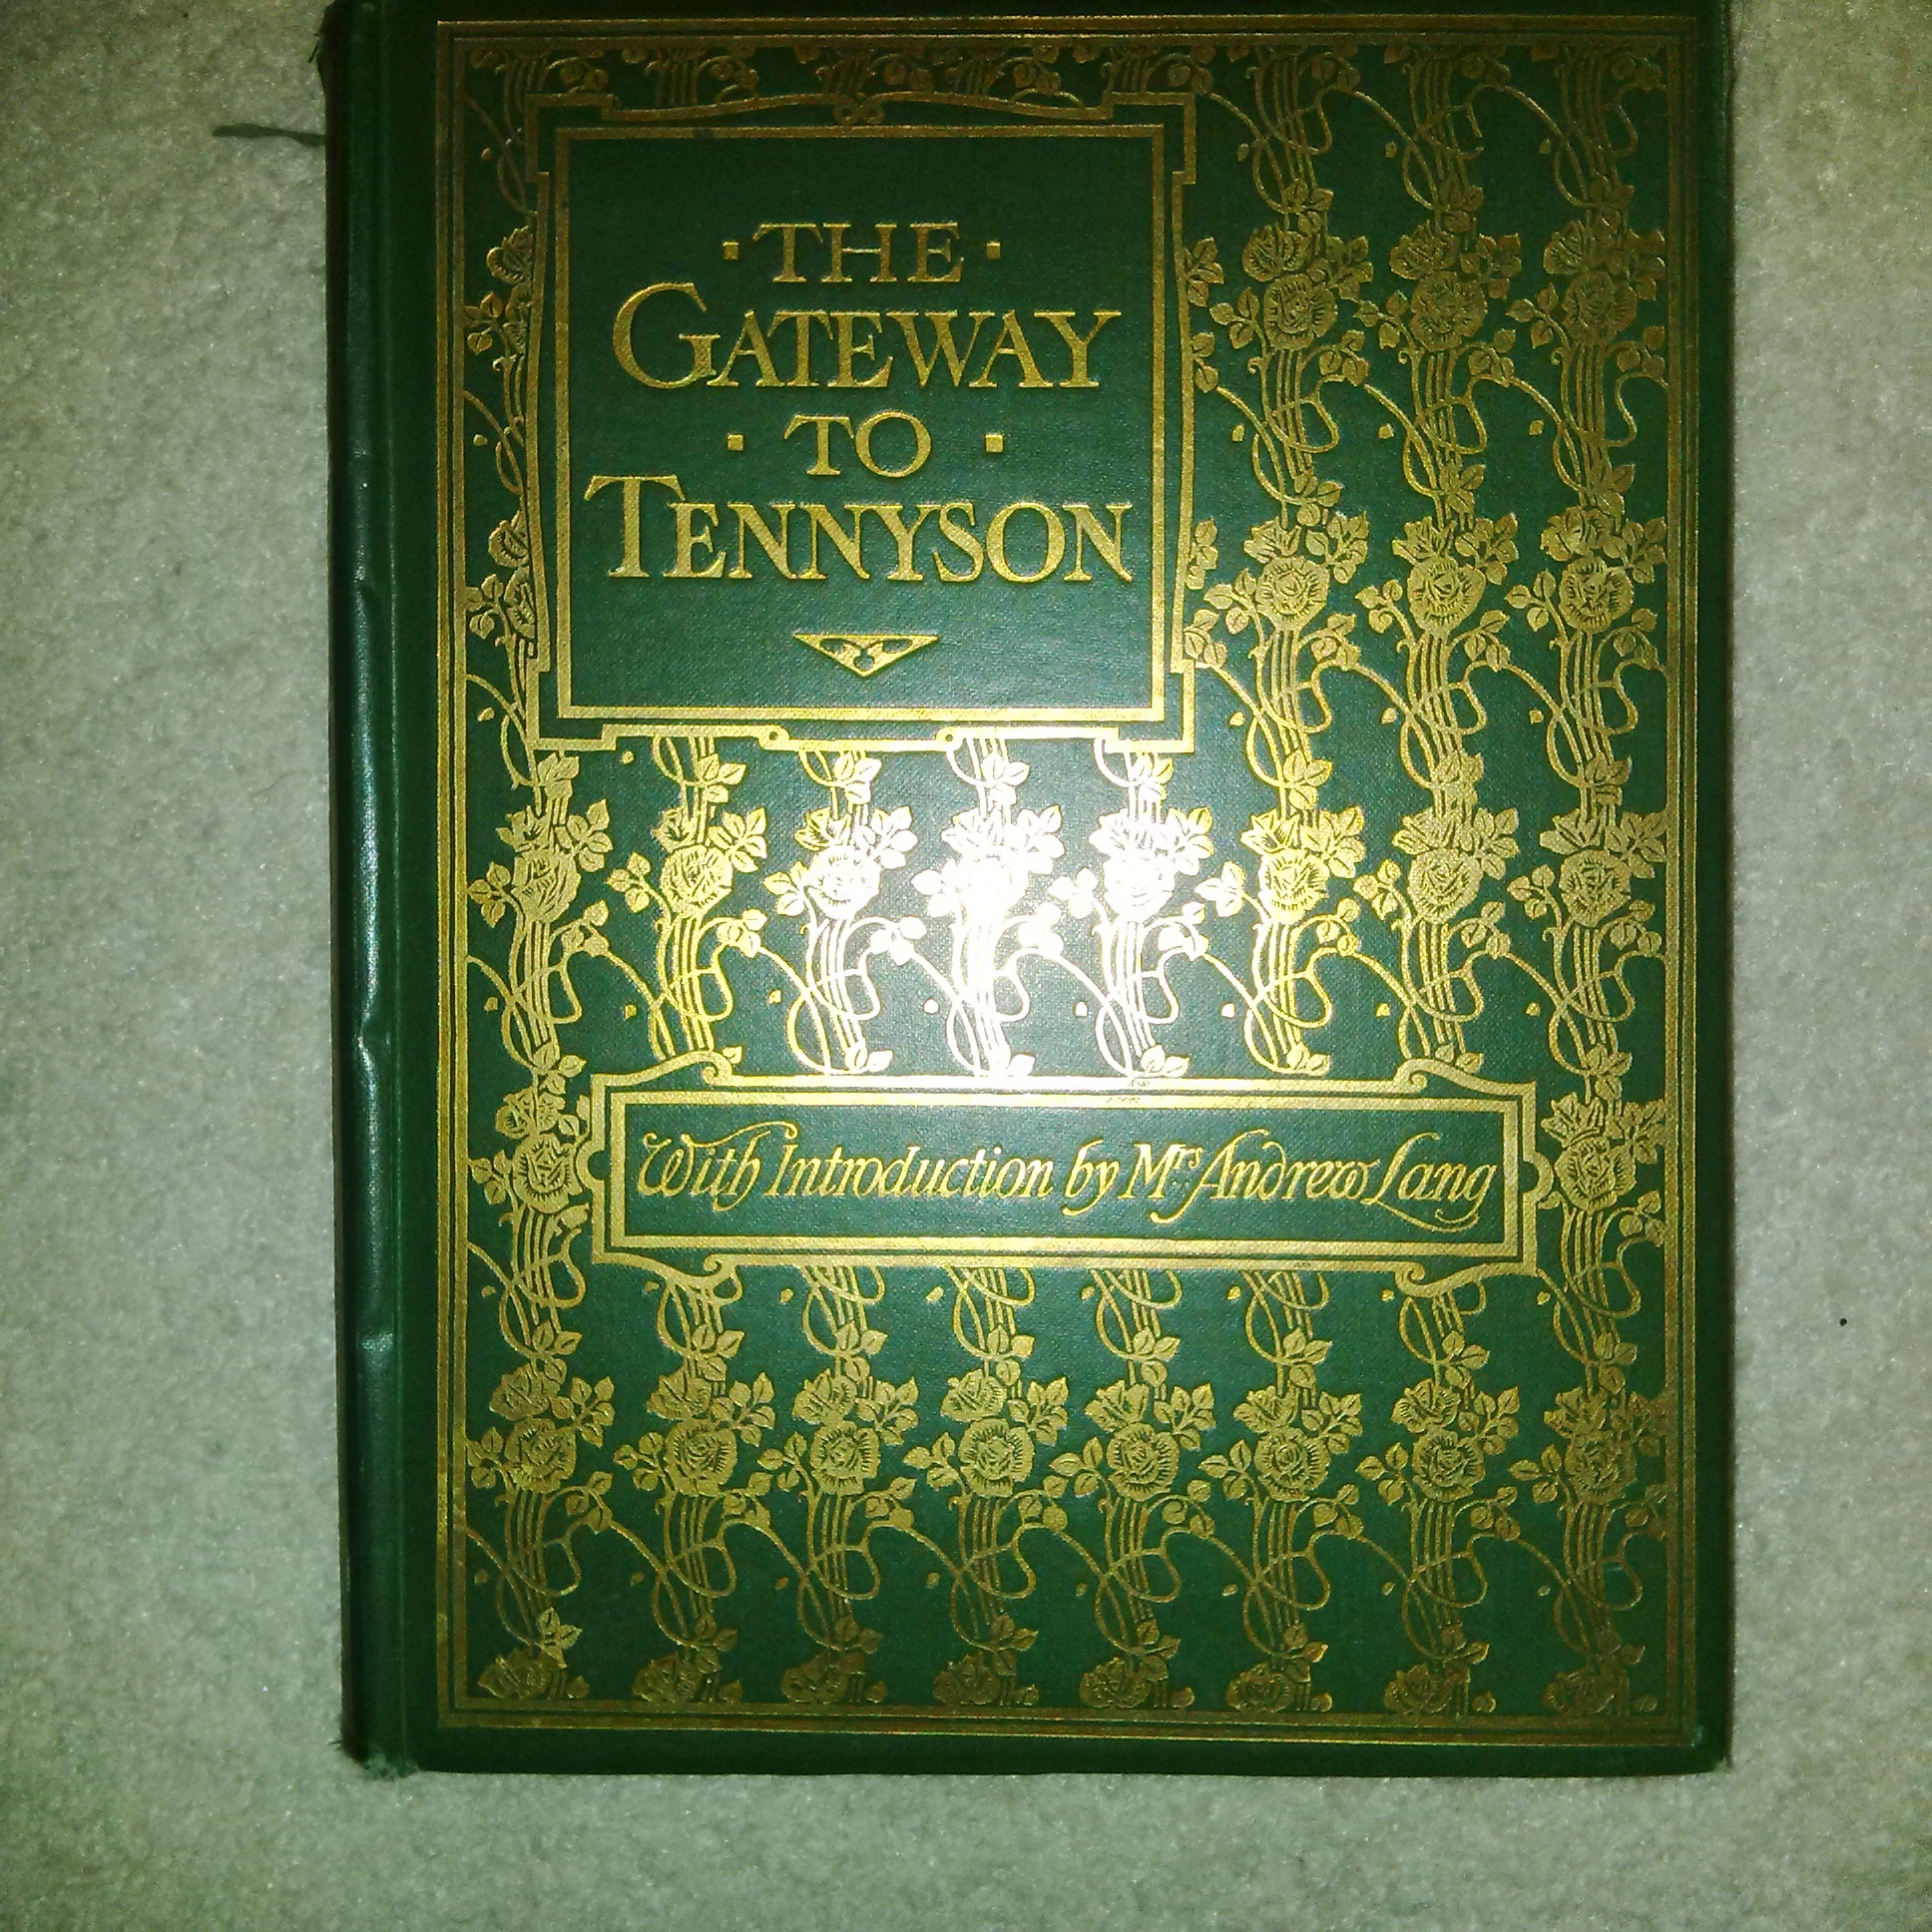 The Gateway to Tennyson  by  Tennyson with an introduction by Mrs. Andrew Lang